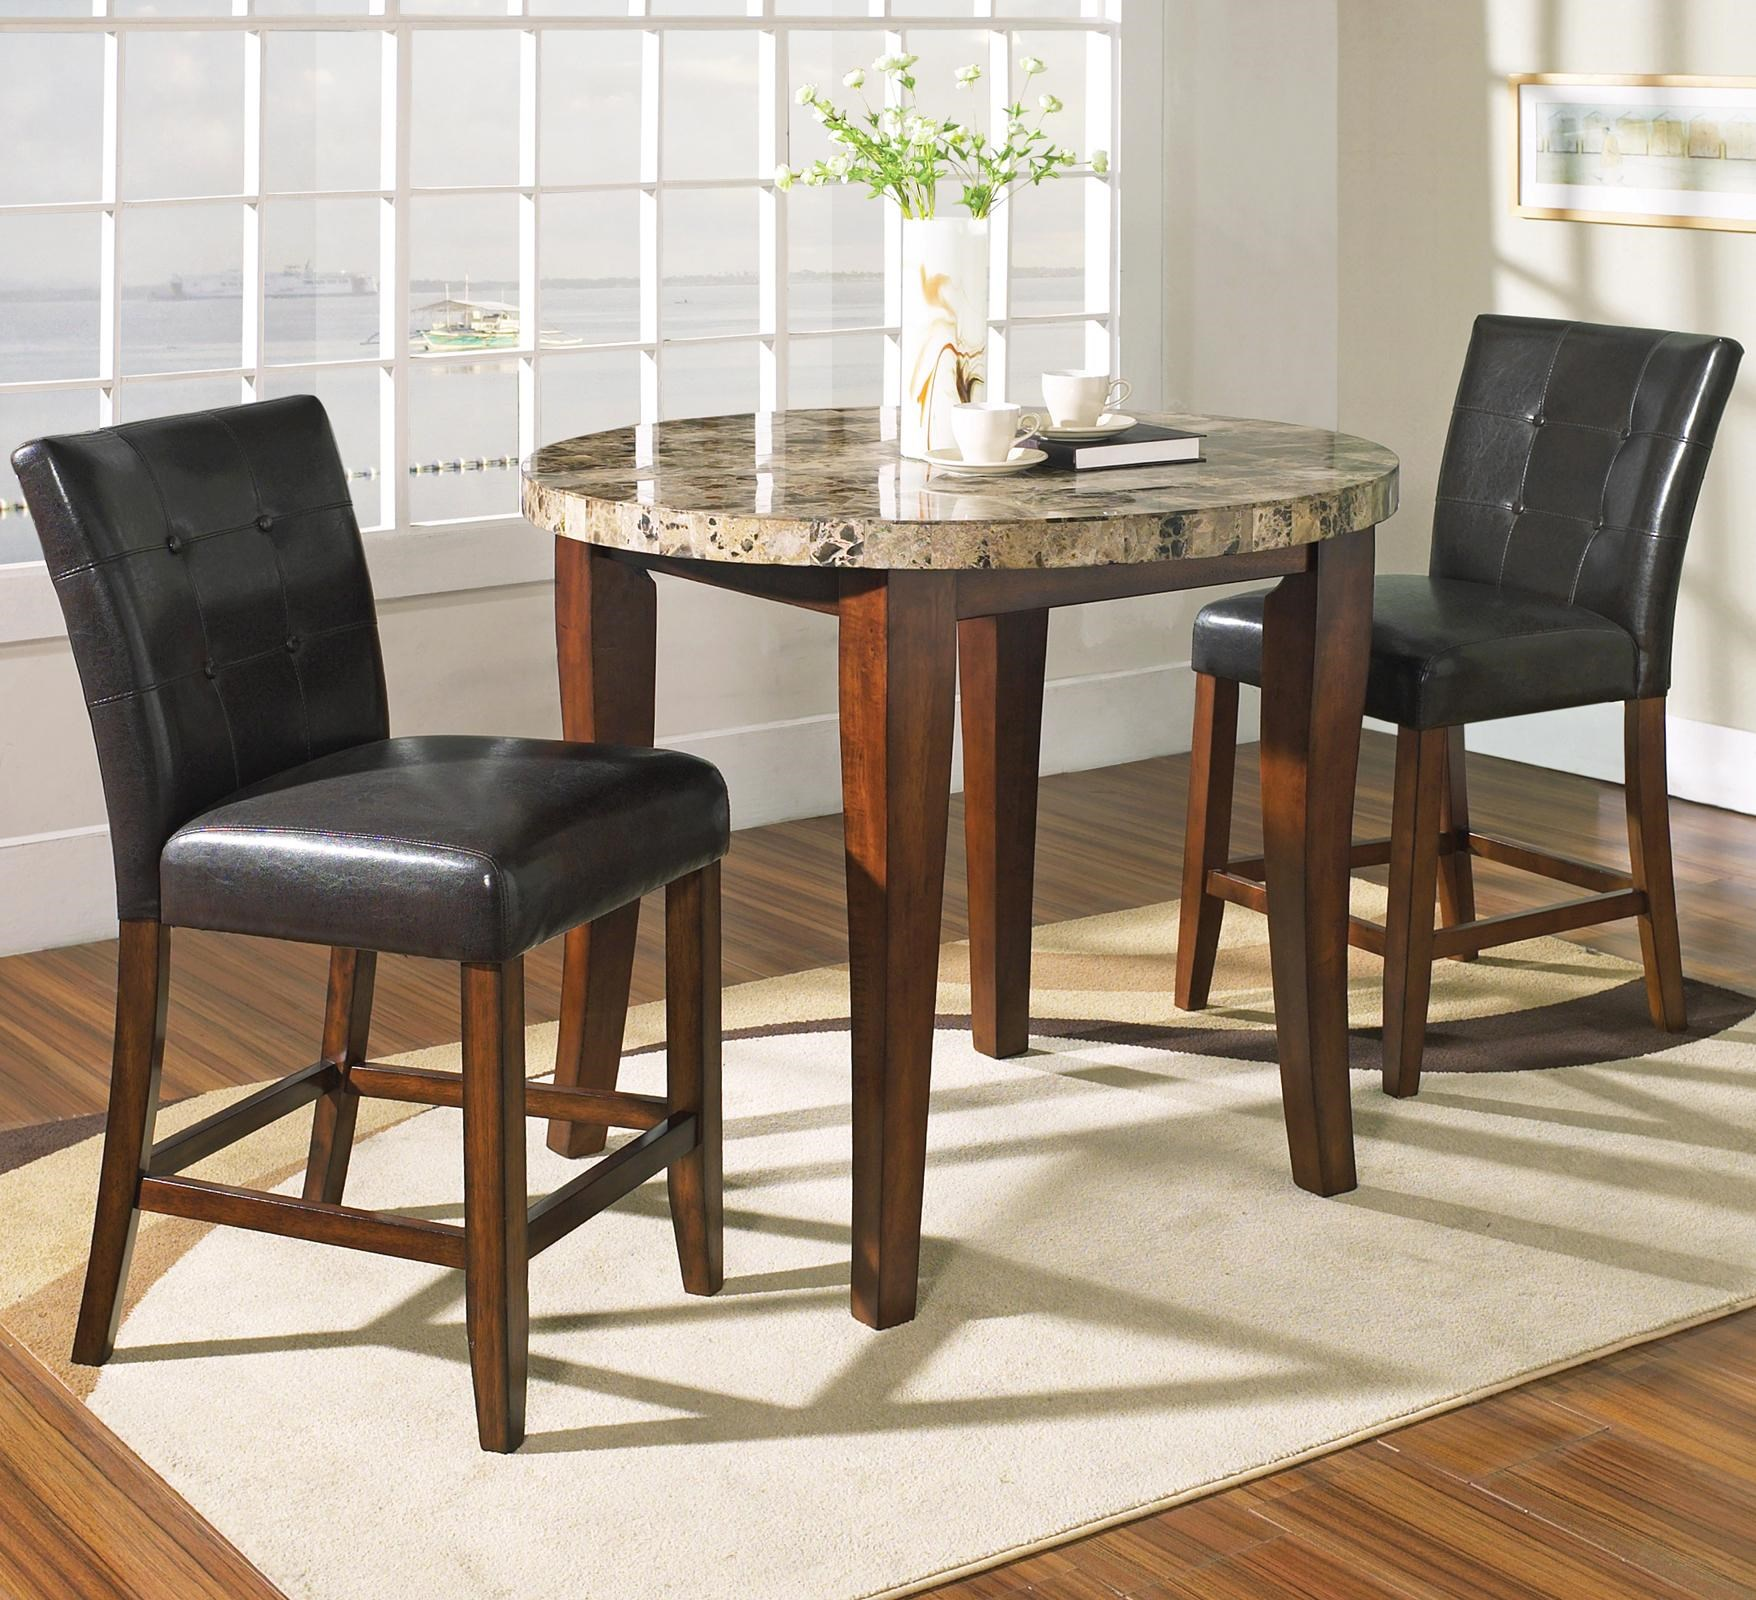 Steve Silver Montibello 3 Piece Counter Height Round Table And Chair Set